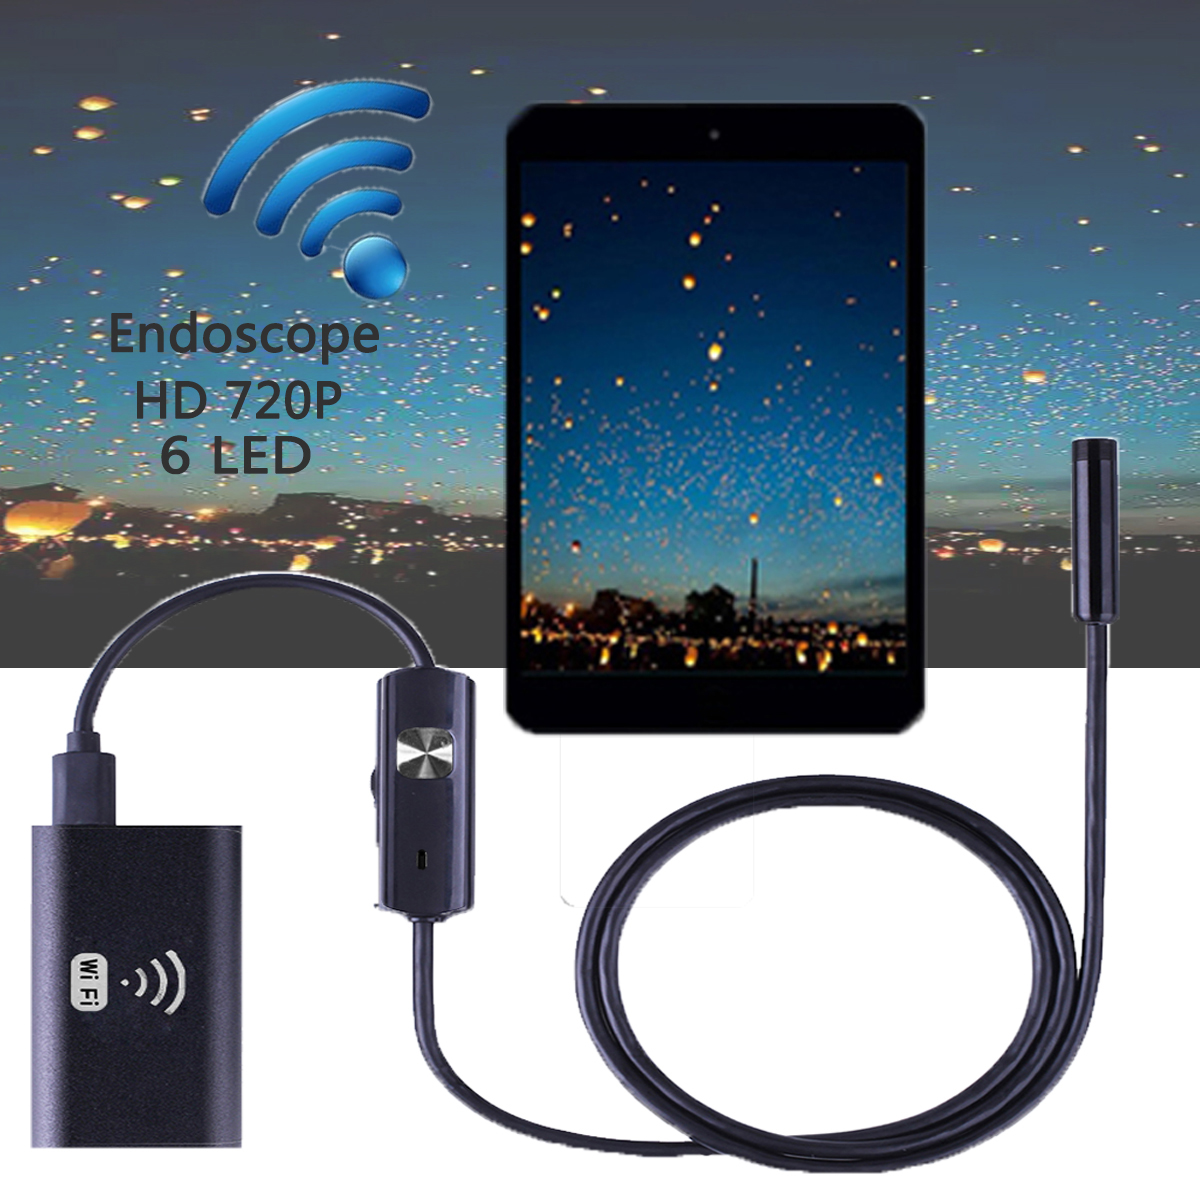 Waterproof 6 LED WIFI Endoscope Borescope Inspection Camera for iPhone Android